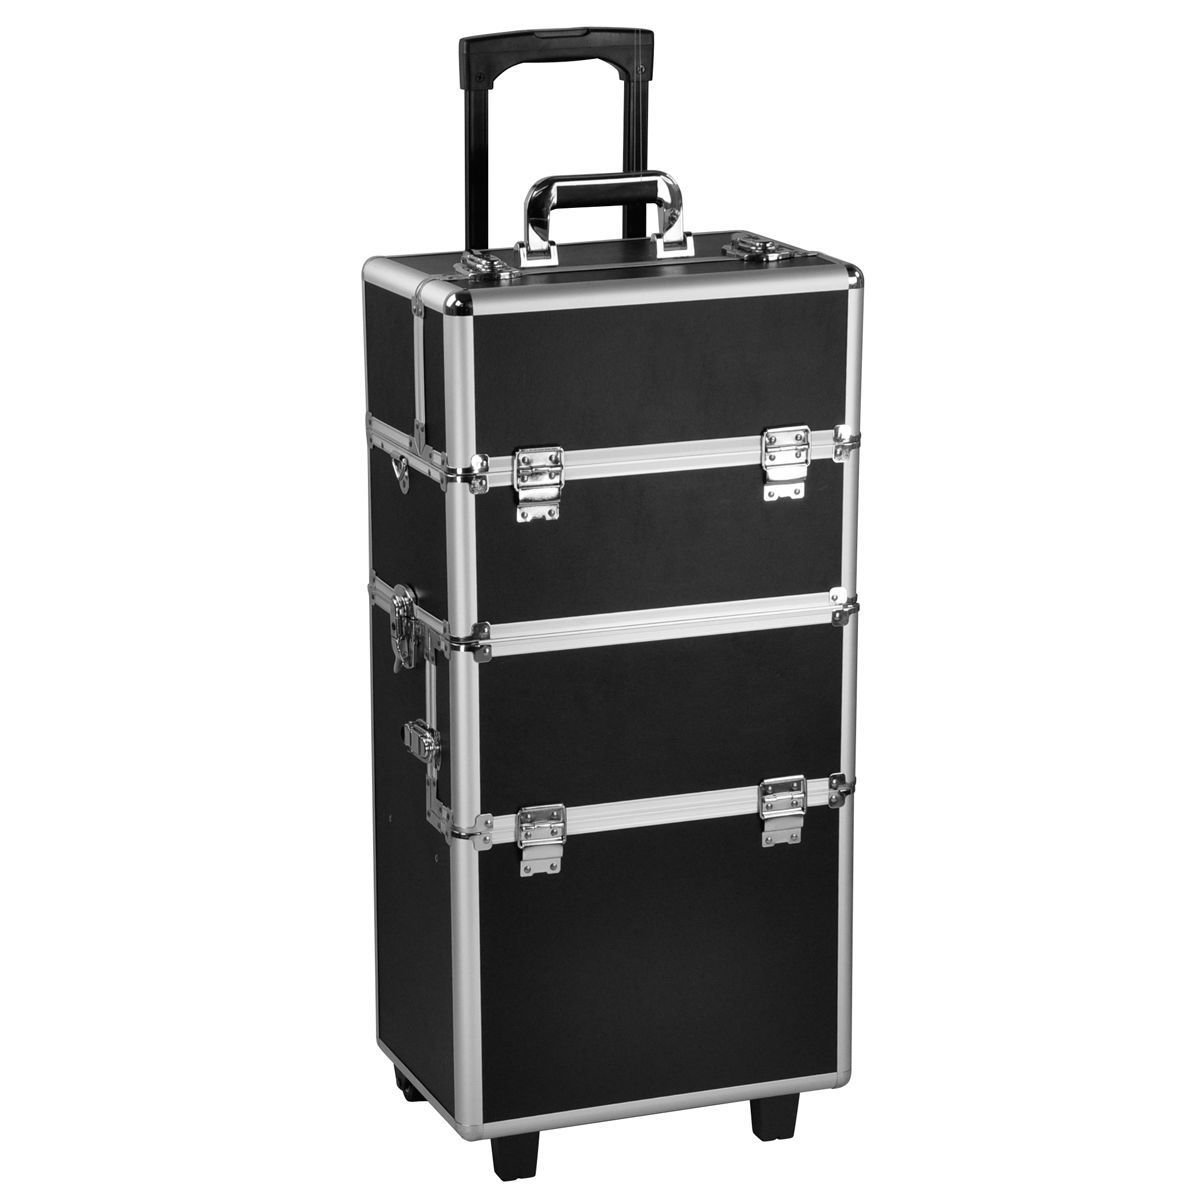 3 in 1 Pro Aluminum Rolling Makeup Case Salon Cosmetic Organizer Trolley-Black By Allgoodsdelight365